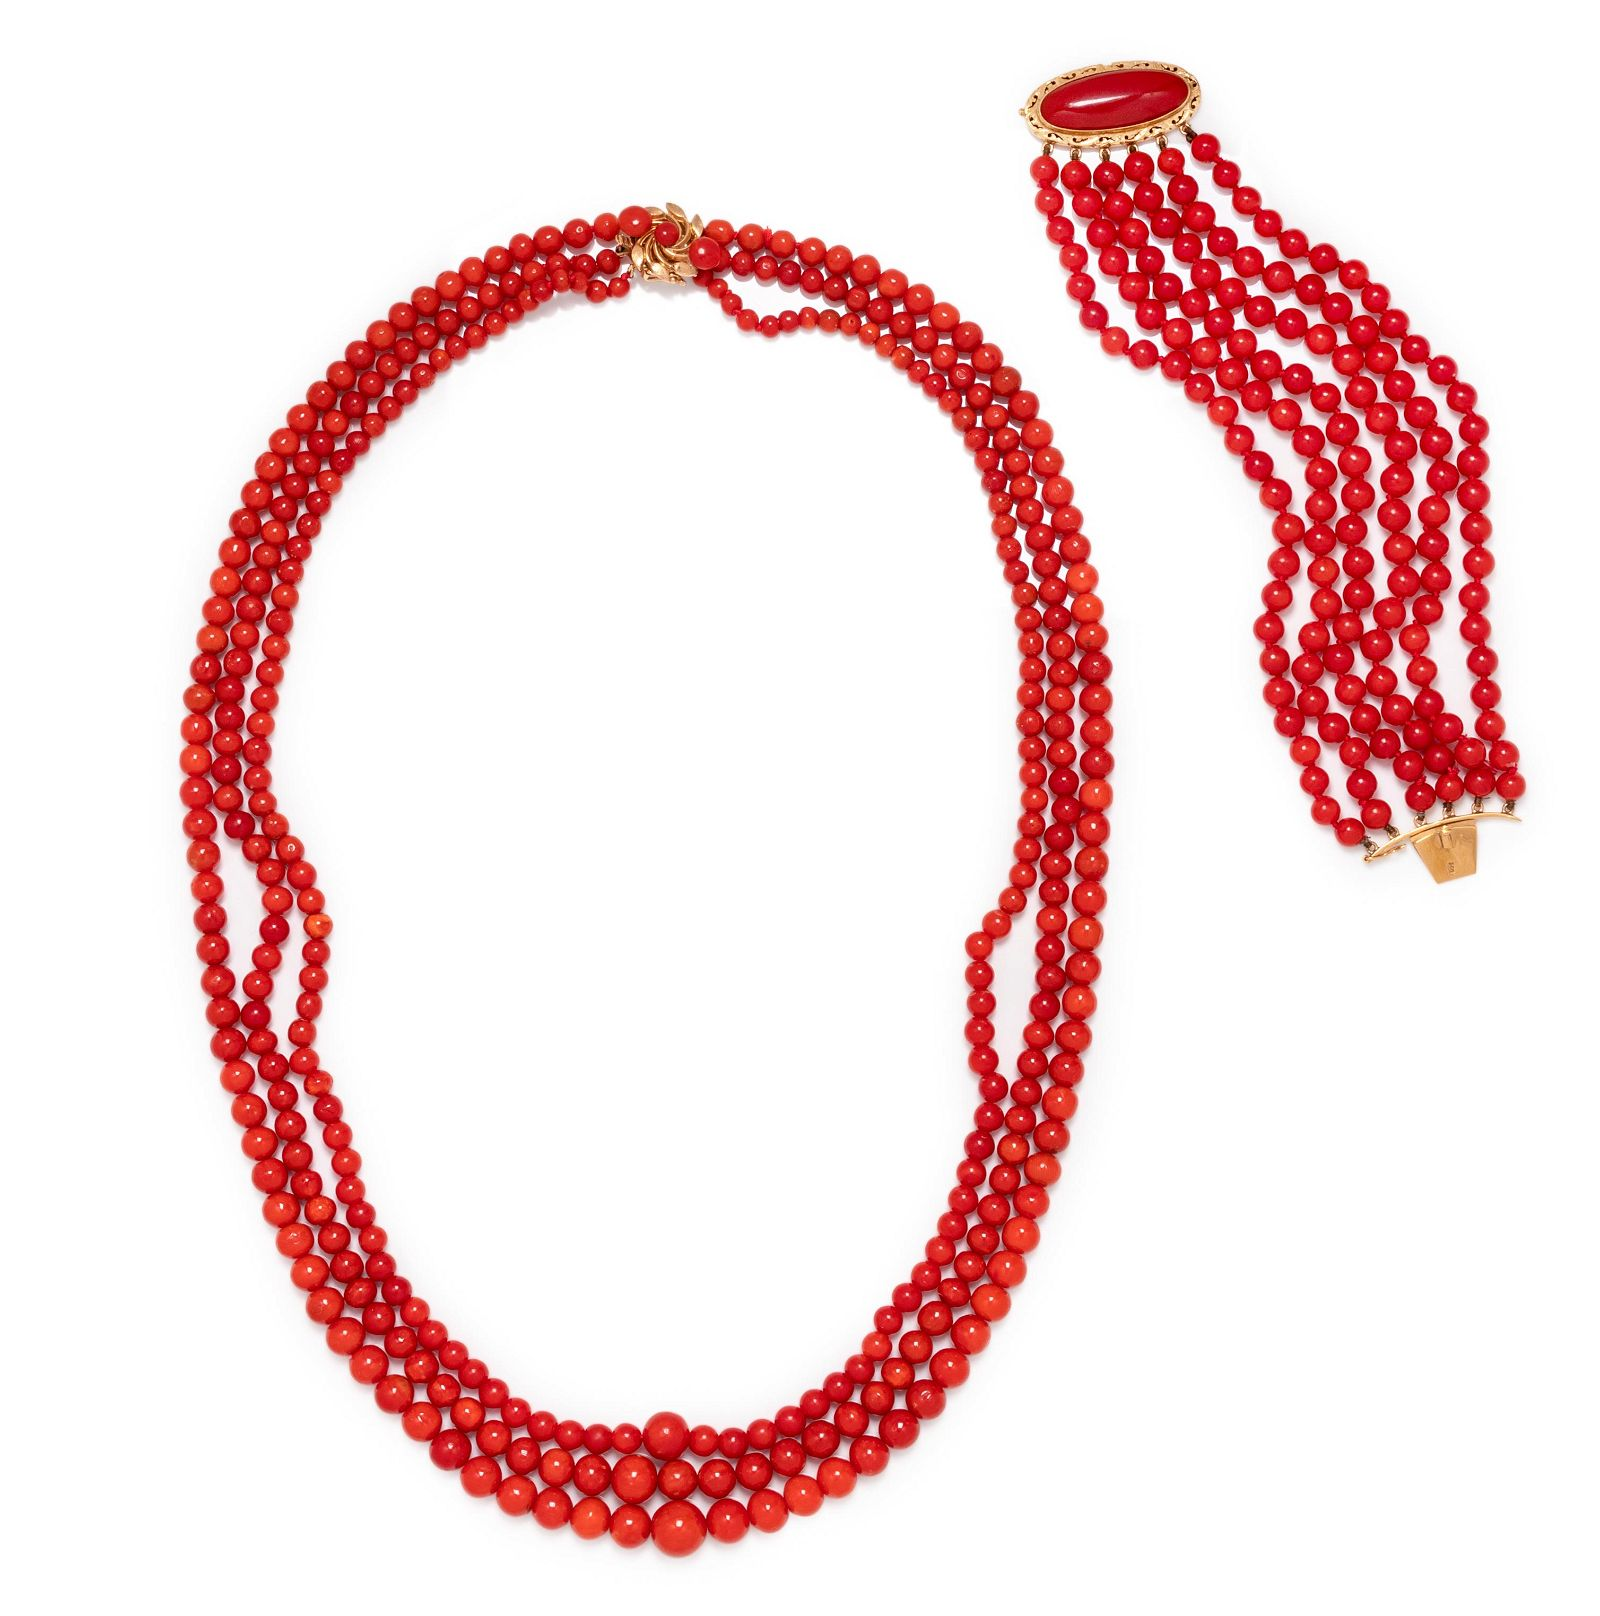 COLLECTION OF CORAL BEAD JEWELRY